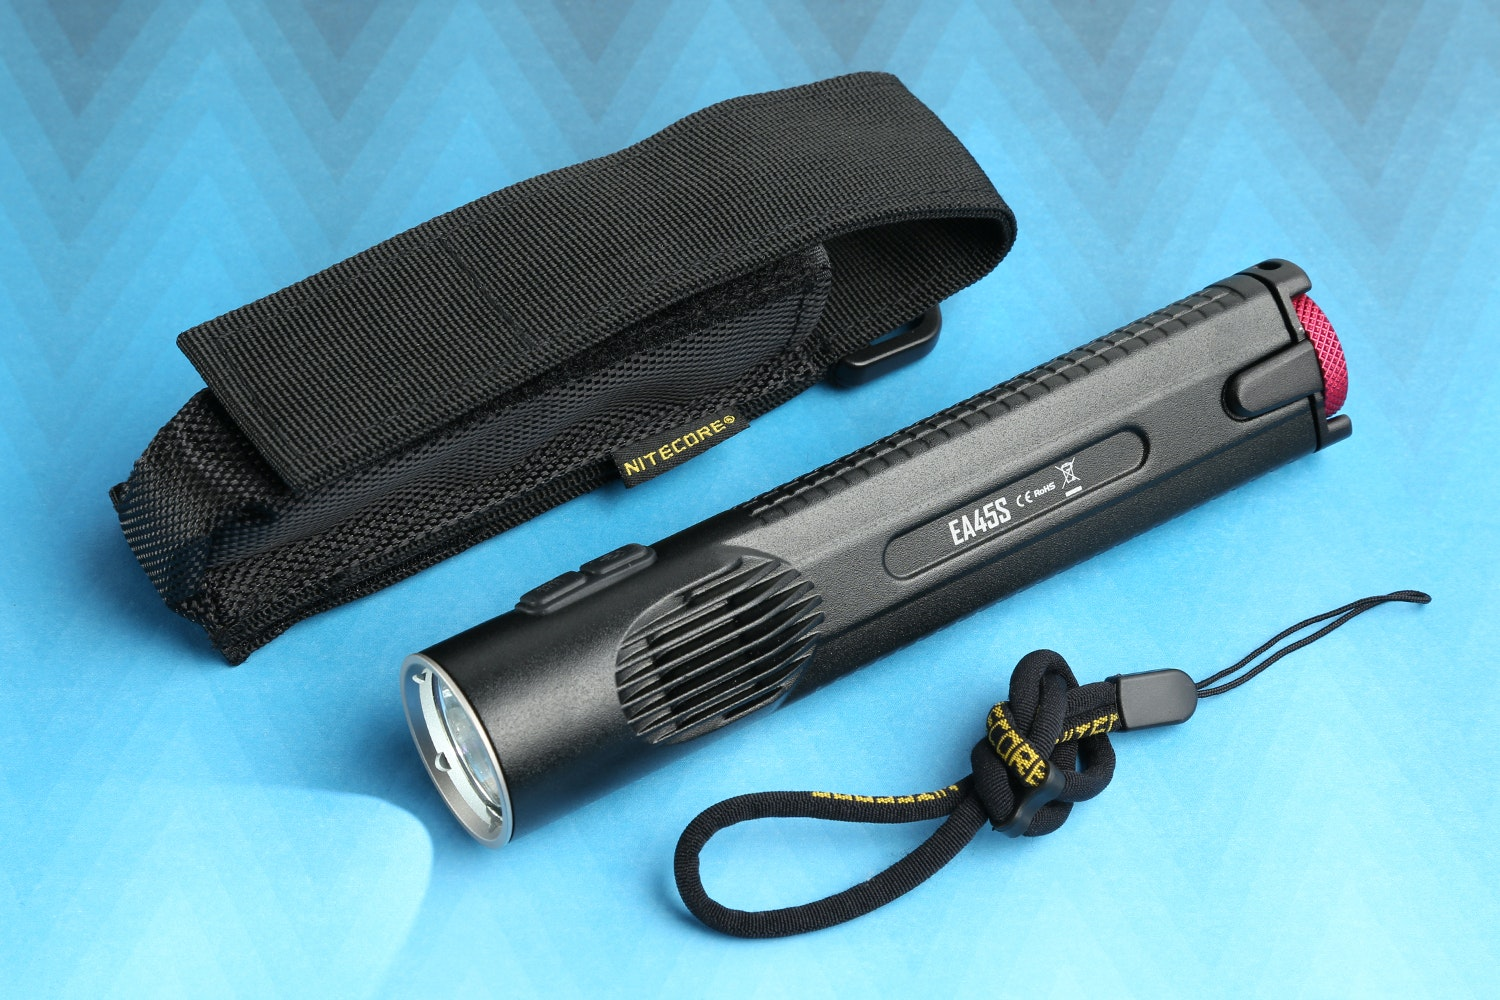 Nitecore EA45S: 4xAA 1,000-Lumen Flashlight